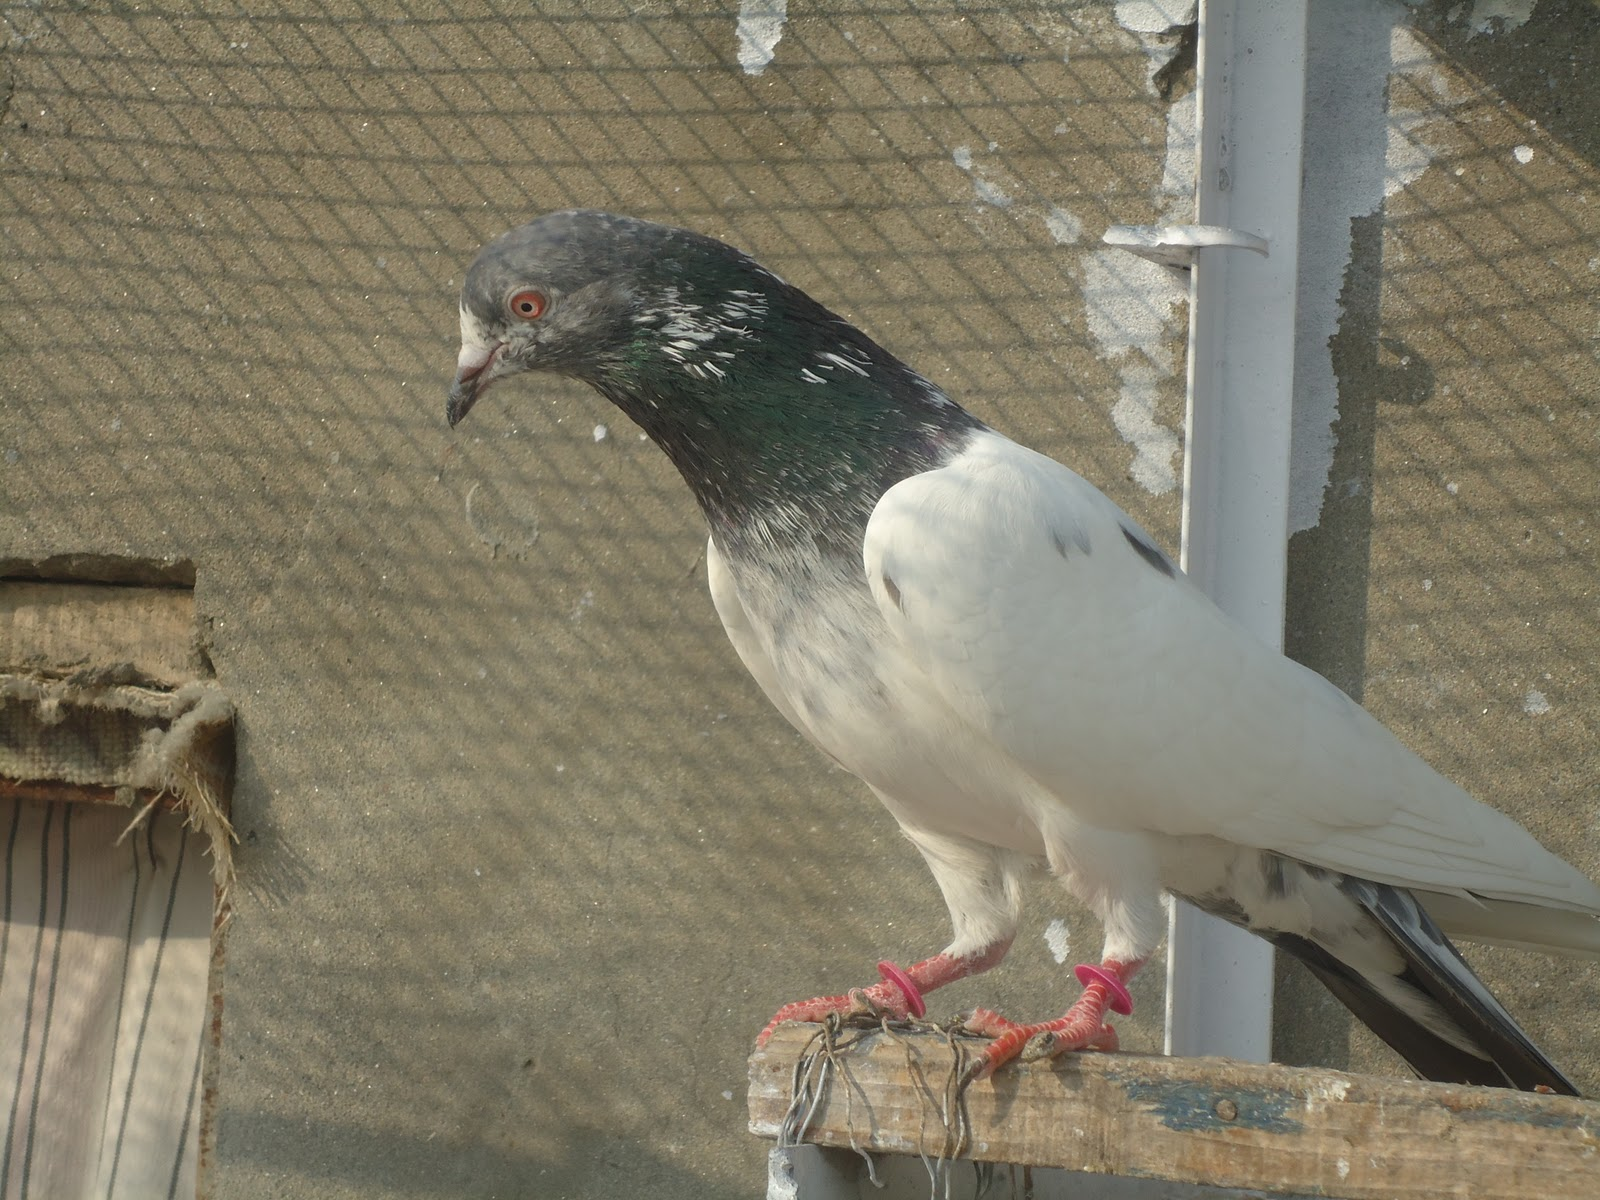 High Fly Pigeons http://kabootarbaaz1.blogspot.com/2011/02/pakistani-high-flying-tipplers.html